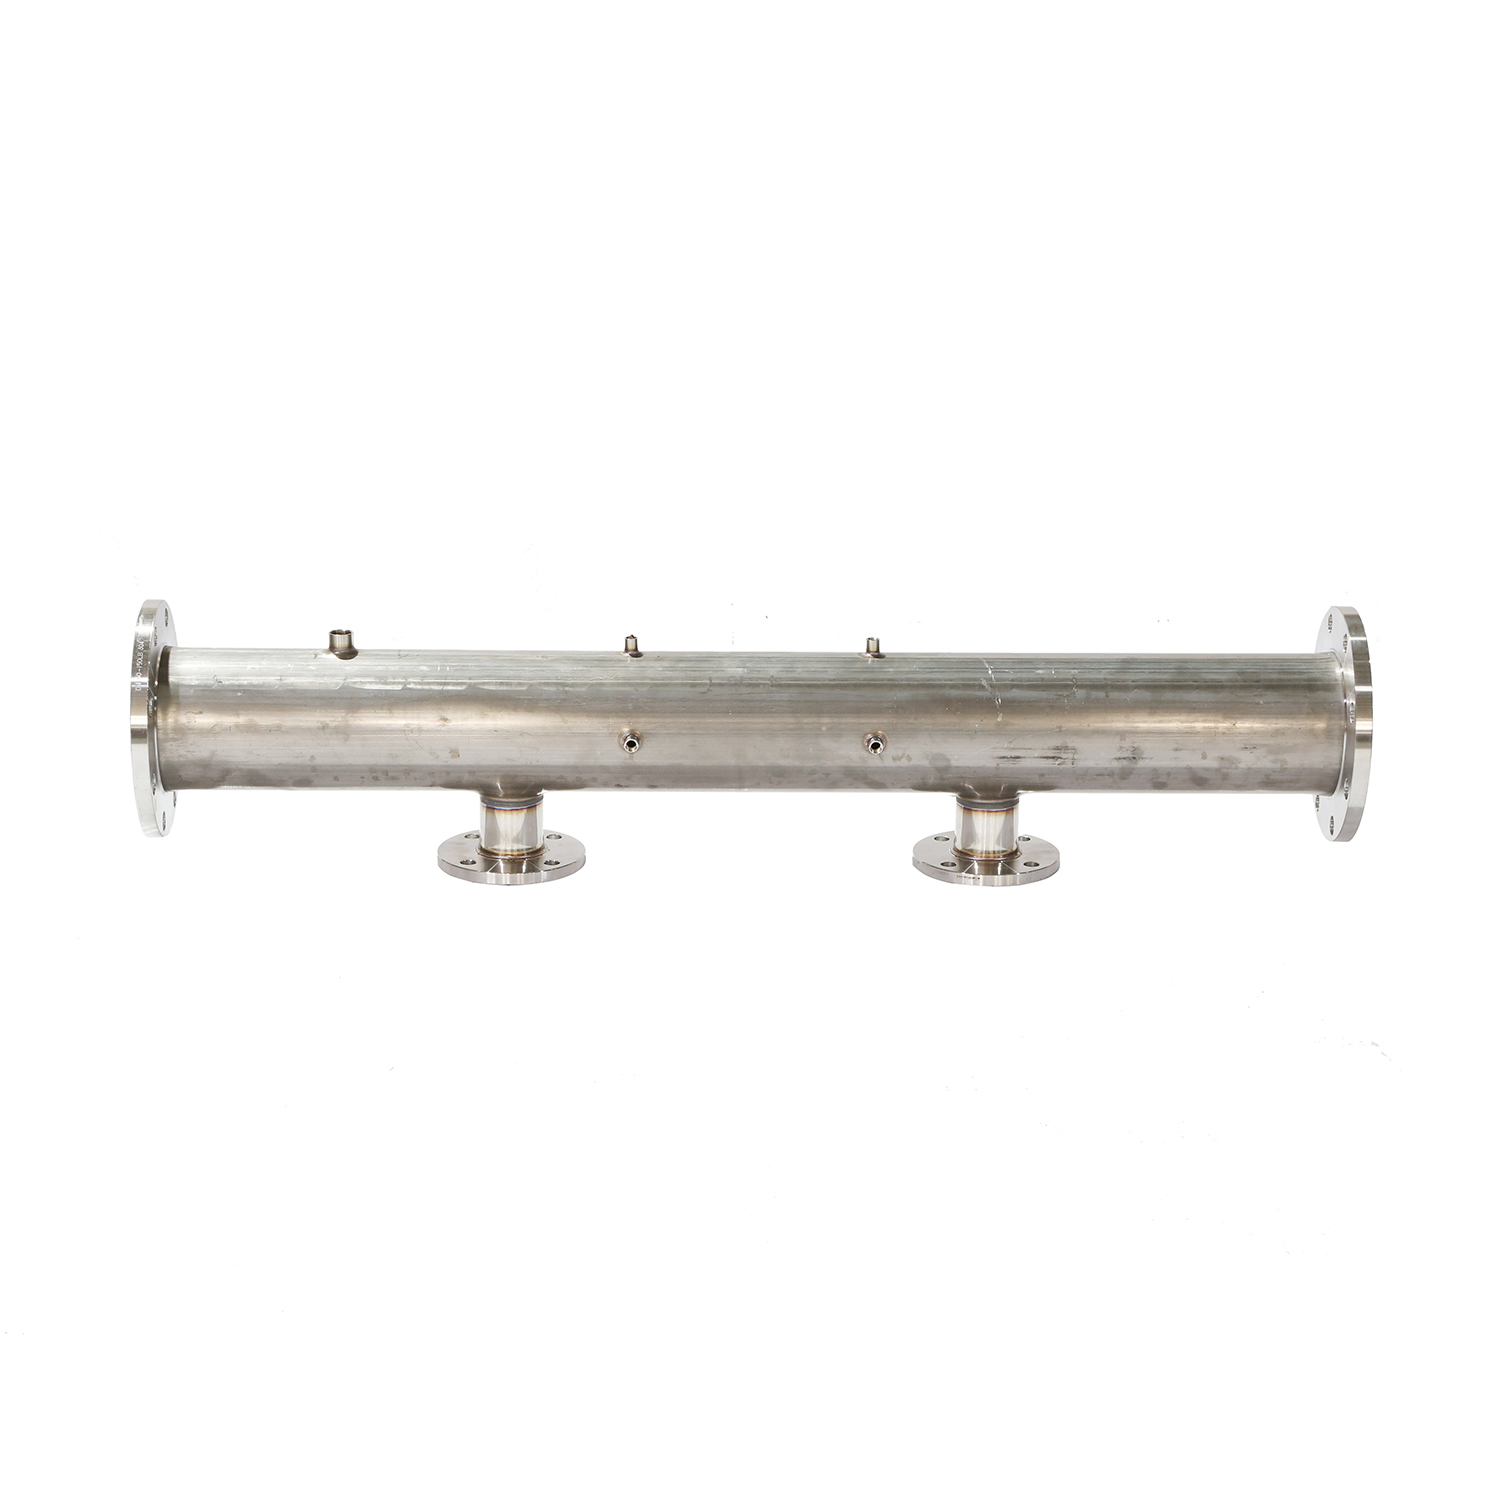 Stainless Steel Suction Manifold